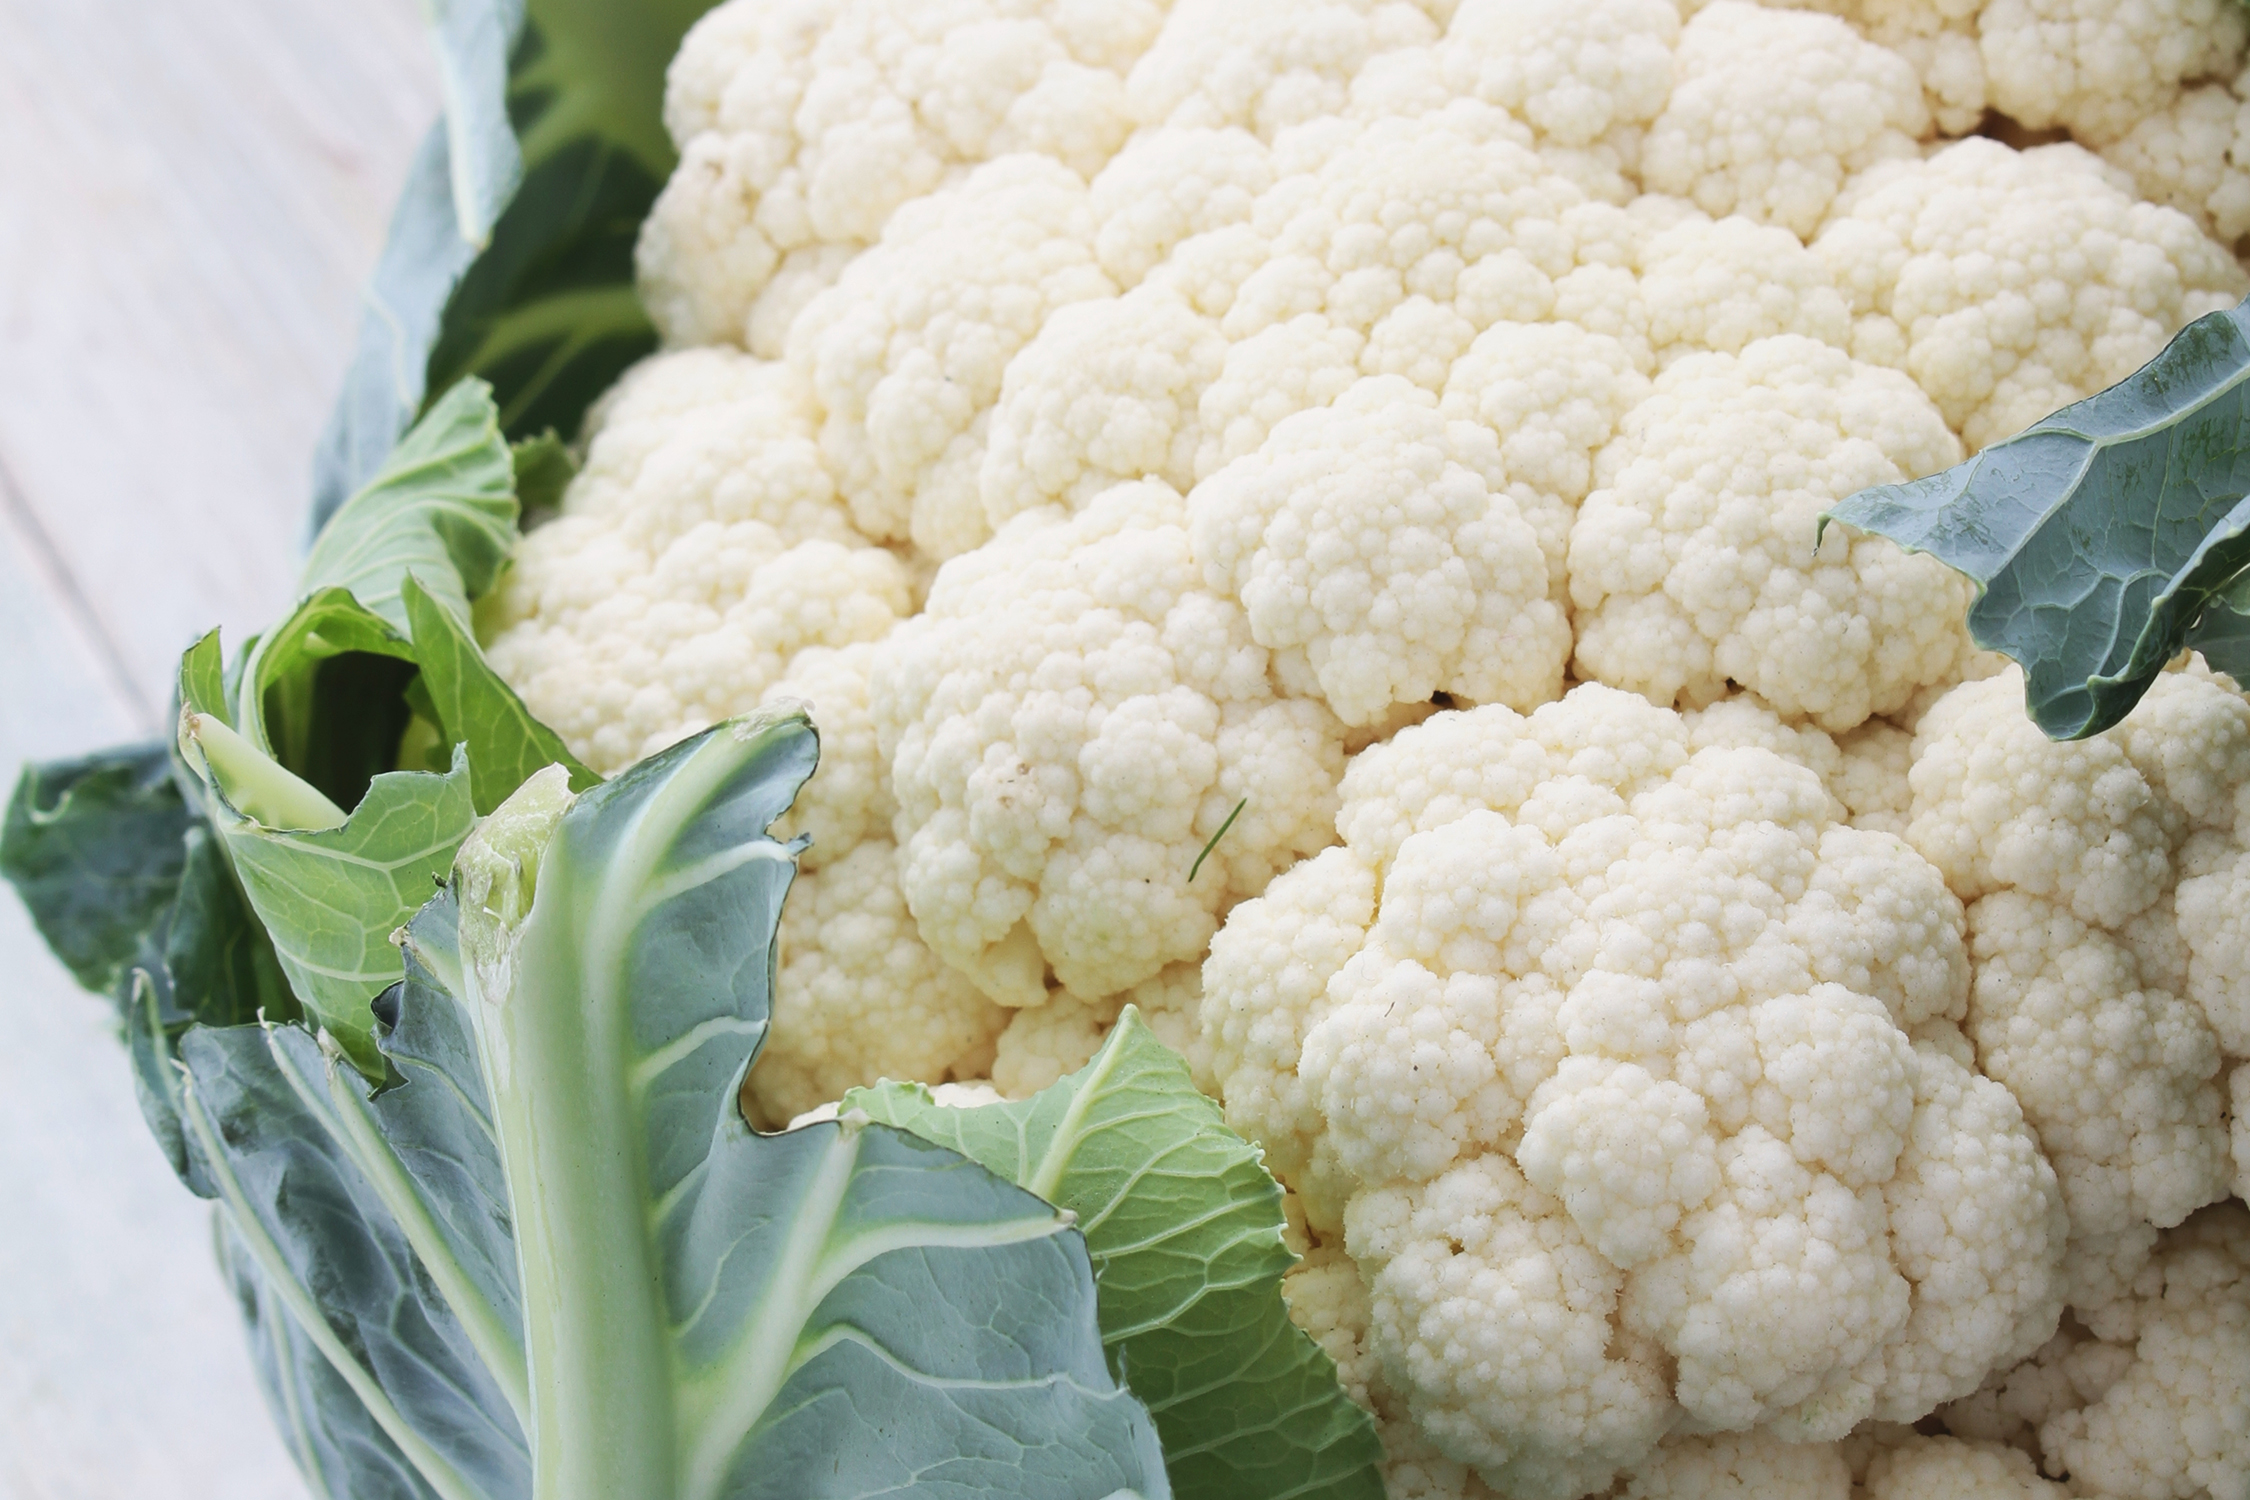 Cauliflower - (8-10 mos.)High in soluble fiber, cauliflower will assist in maintaining regularity but should not be baby's first vegetable as it can be difficult to digest. A good choice for moms-to-be, choline and vitamin B contribute to brain development and boost cognitive function. An unexpected source of vitamin C makes this a great choice over the winter months. Add to an array of fresh cut veggies as an after-school snack to maintain healthy eating habits throughout adolescence.